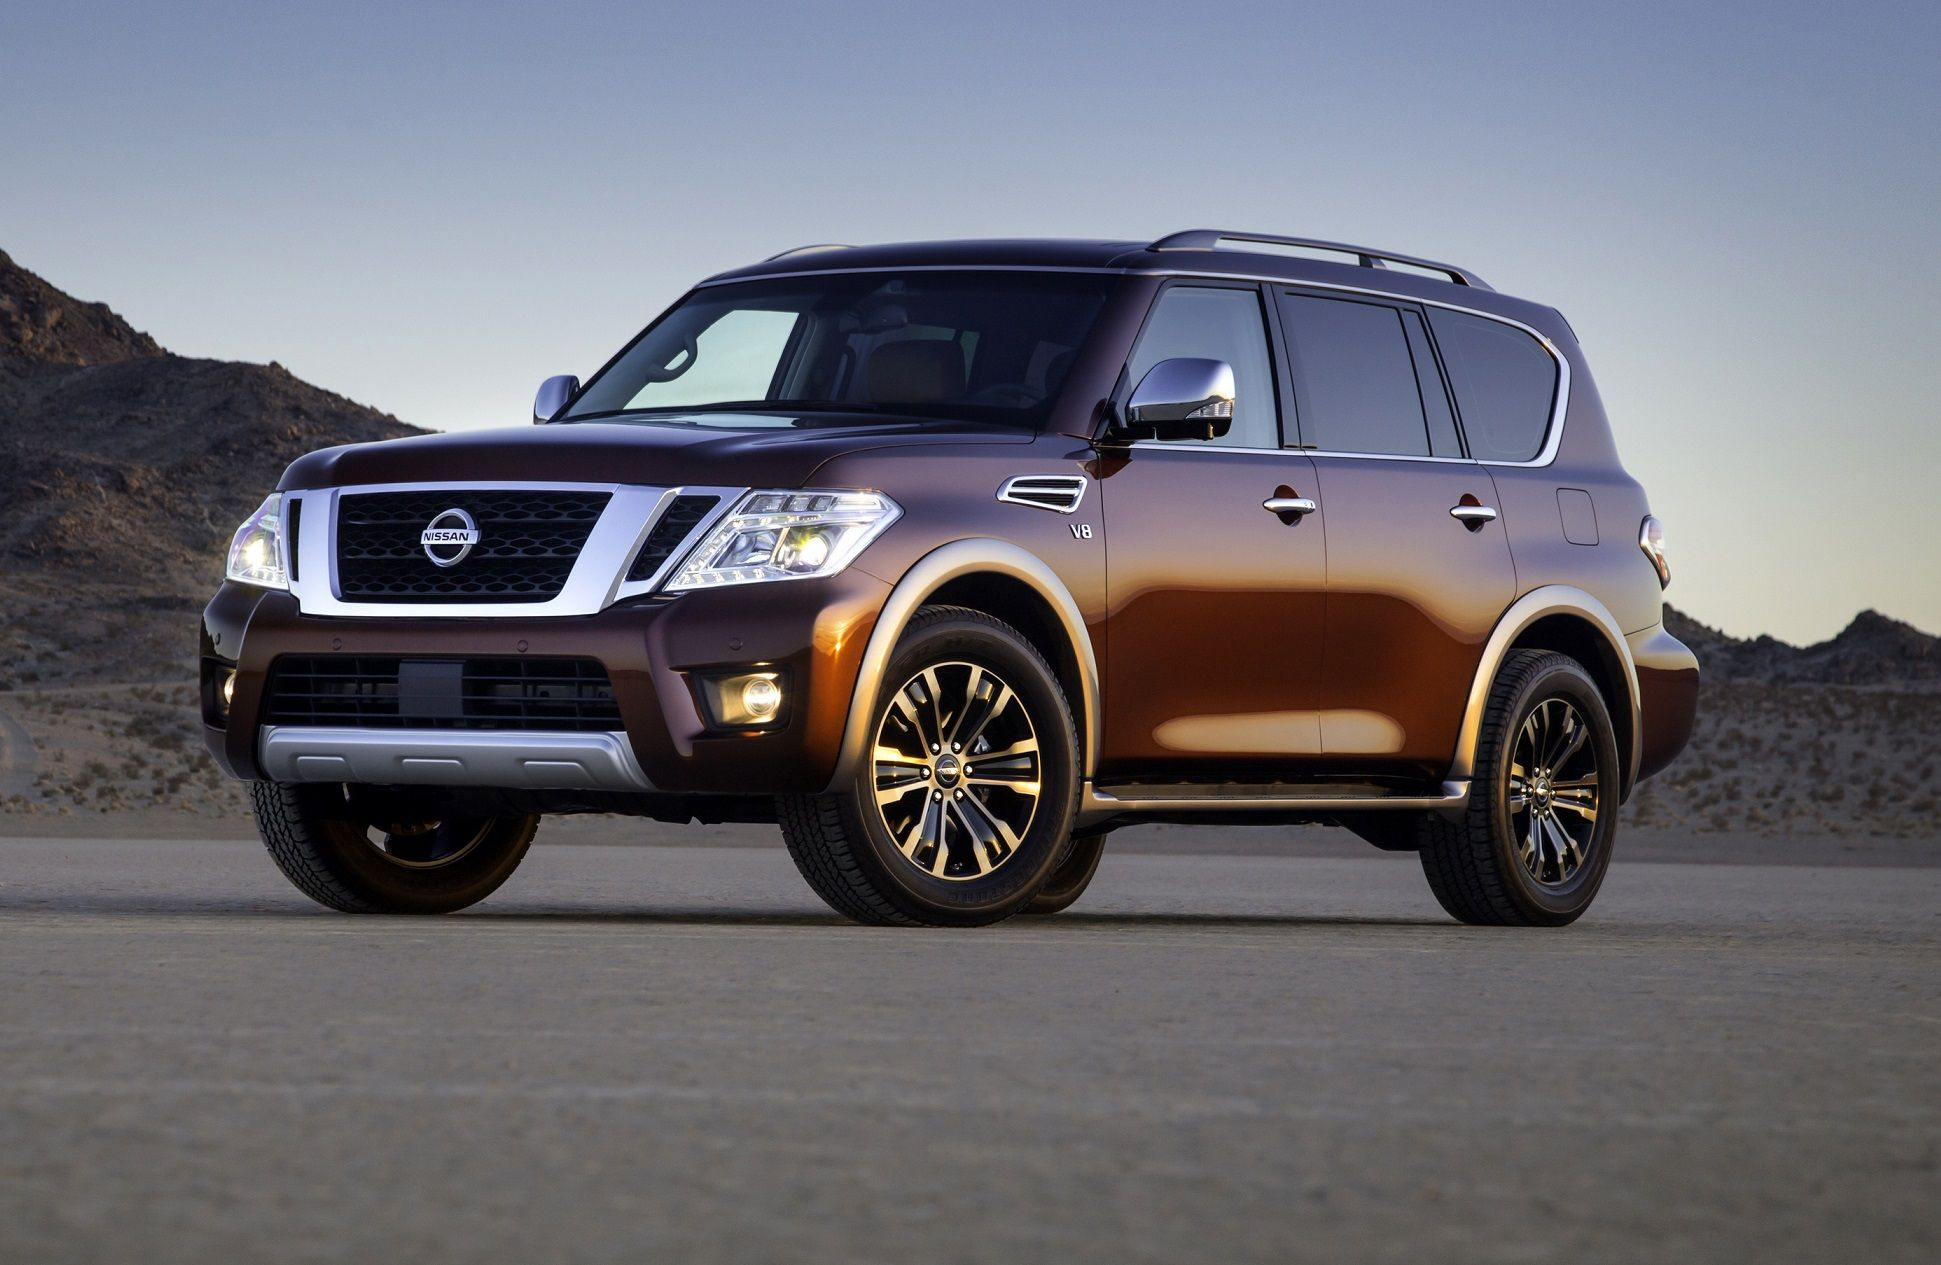 2017 Nissan Armada SUVs and Trucks Pinterest